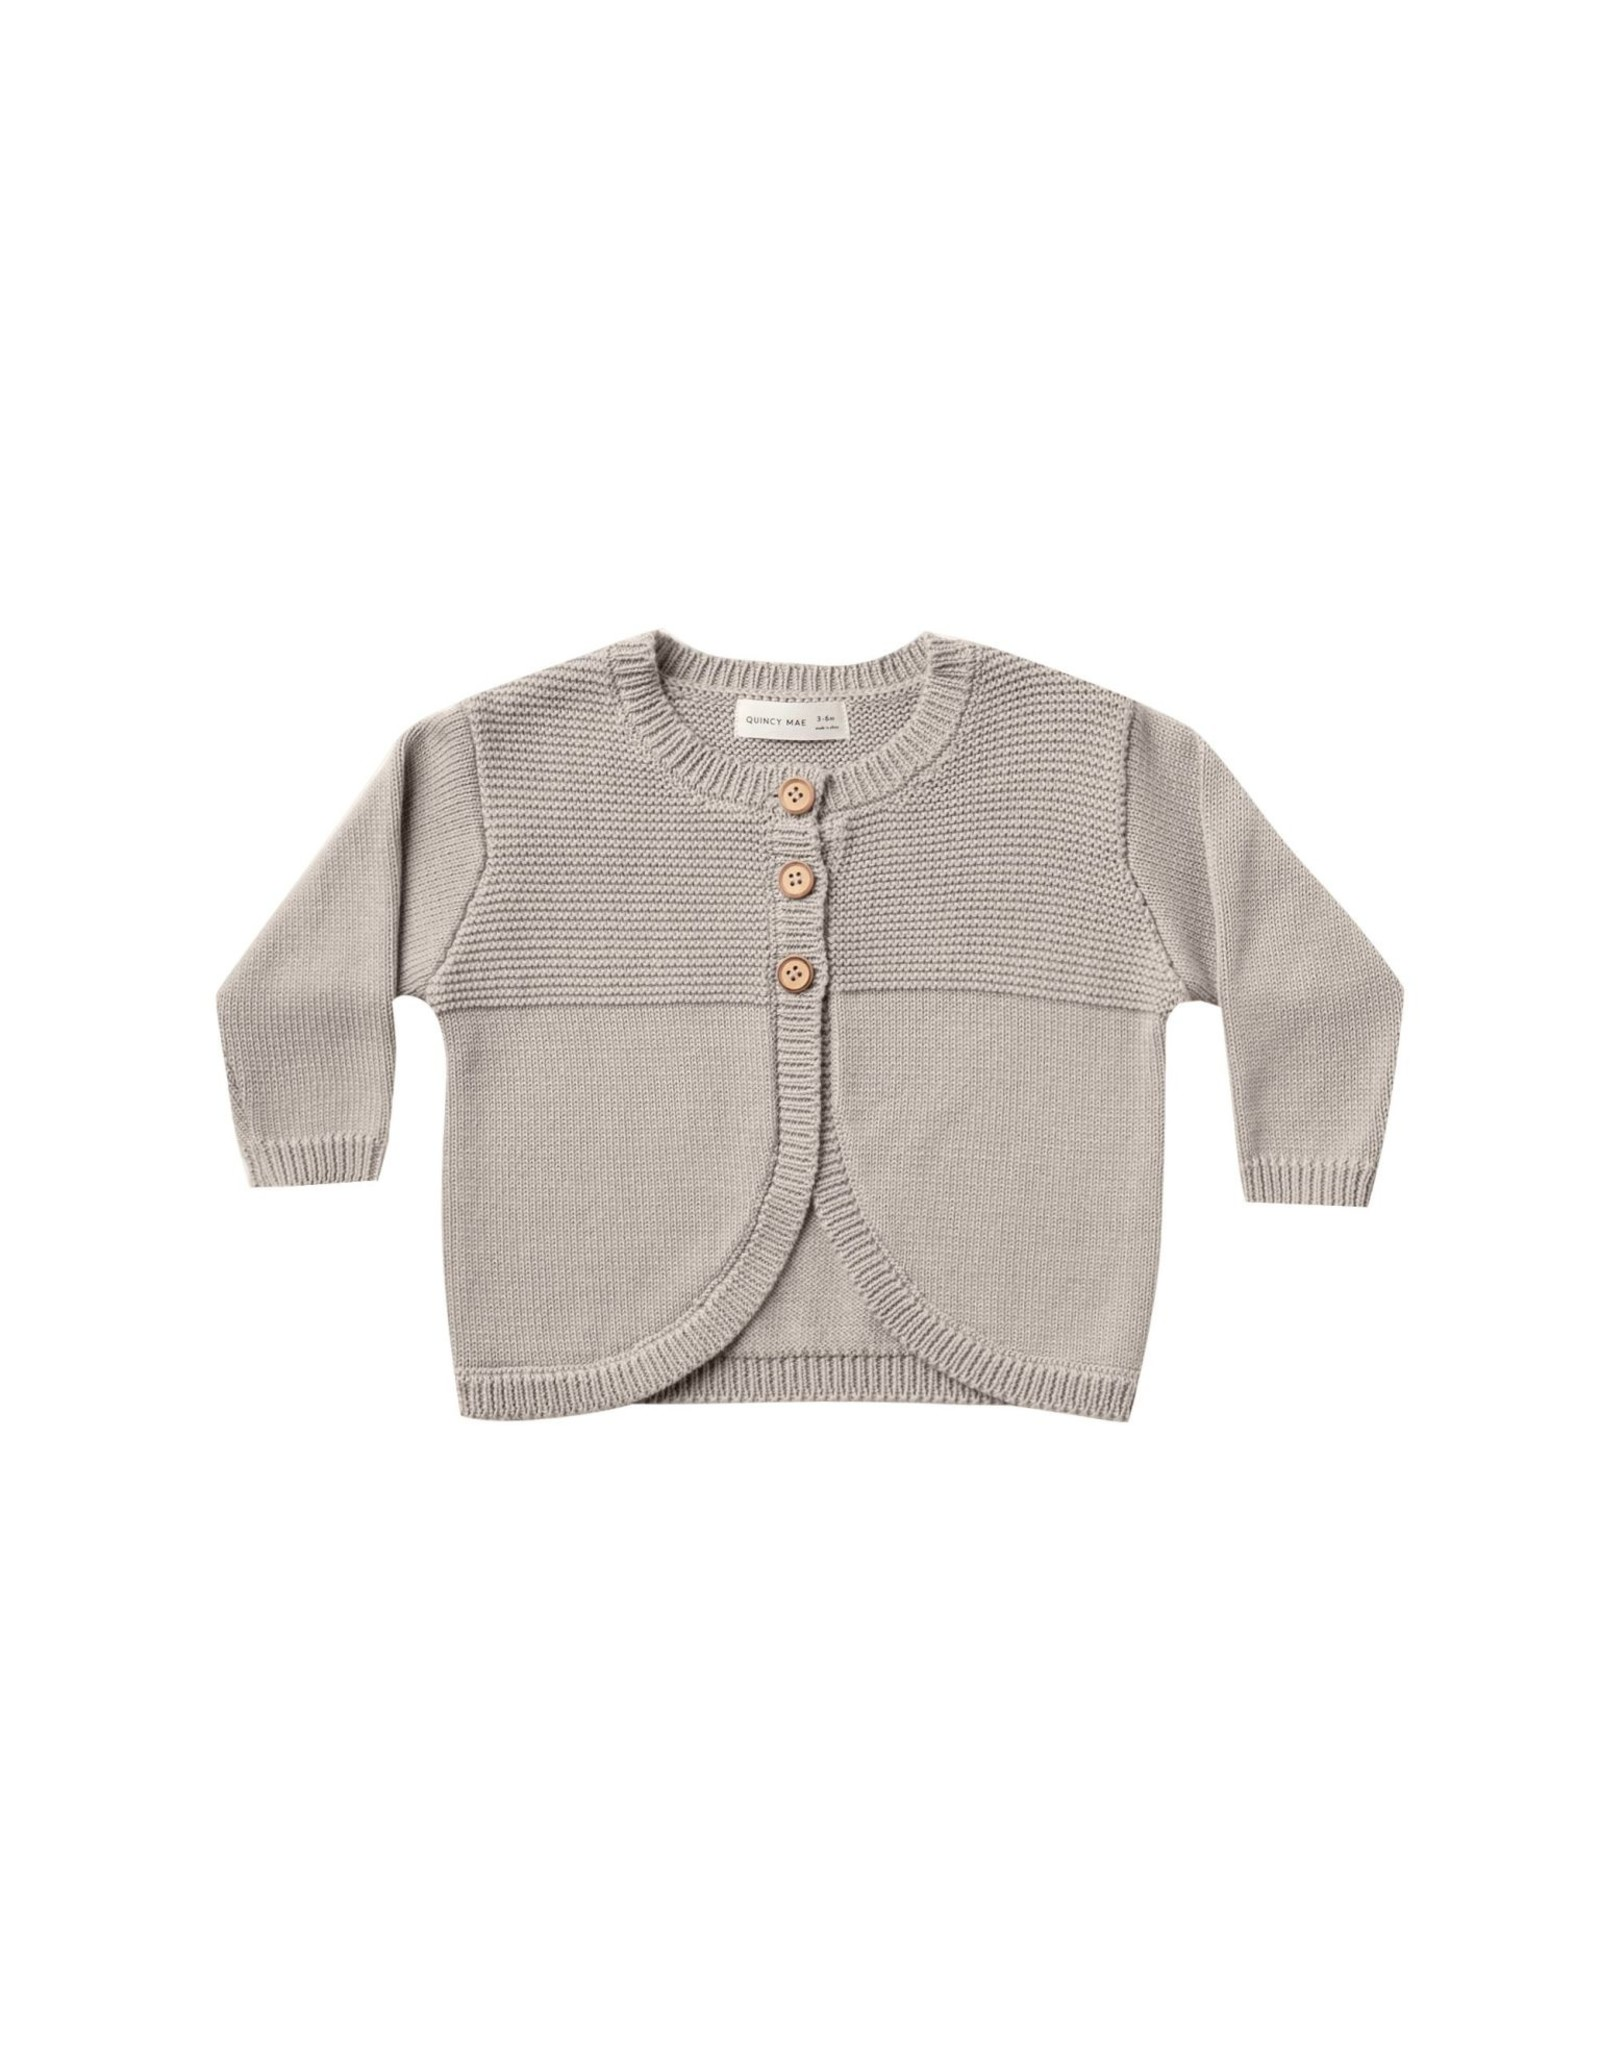 Quincy Mae knit cardigan- fog